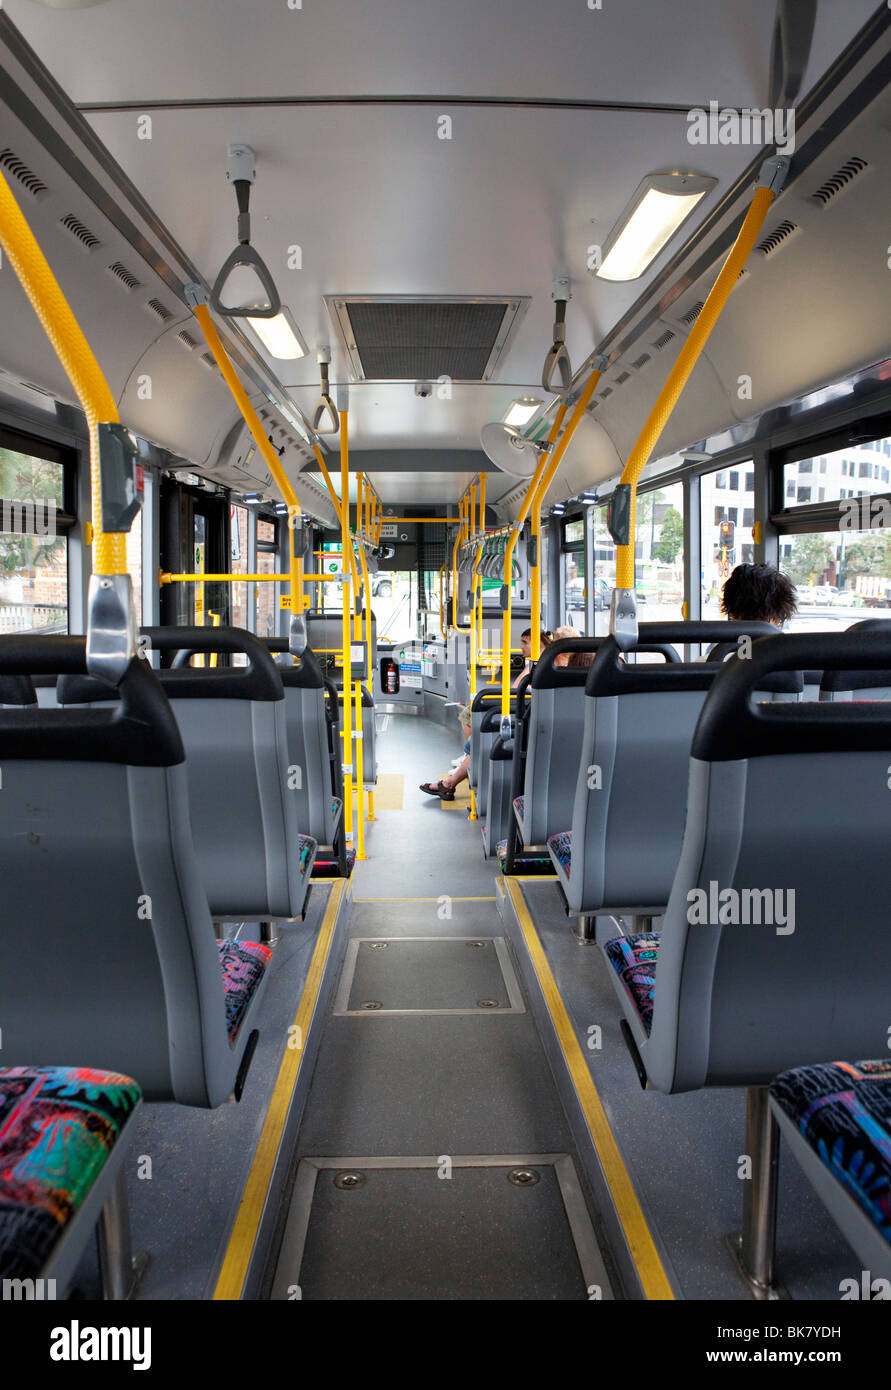 Inside of a bus. - Stock Image